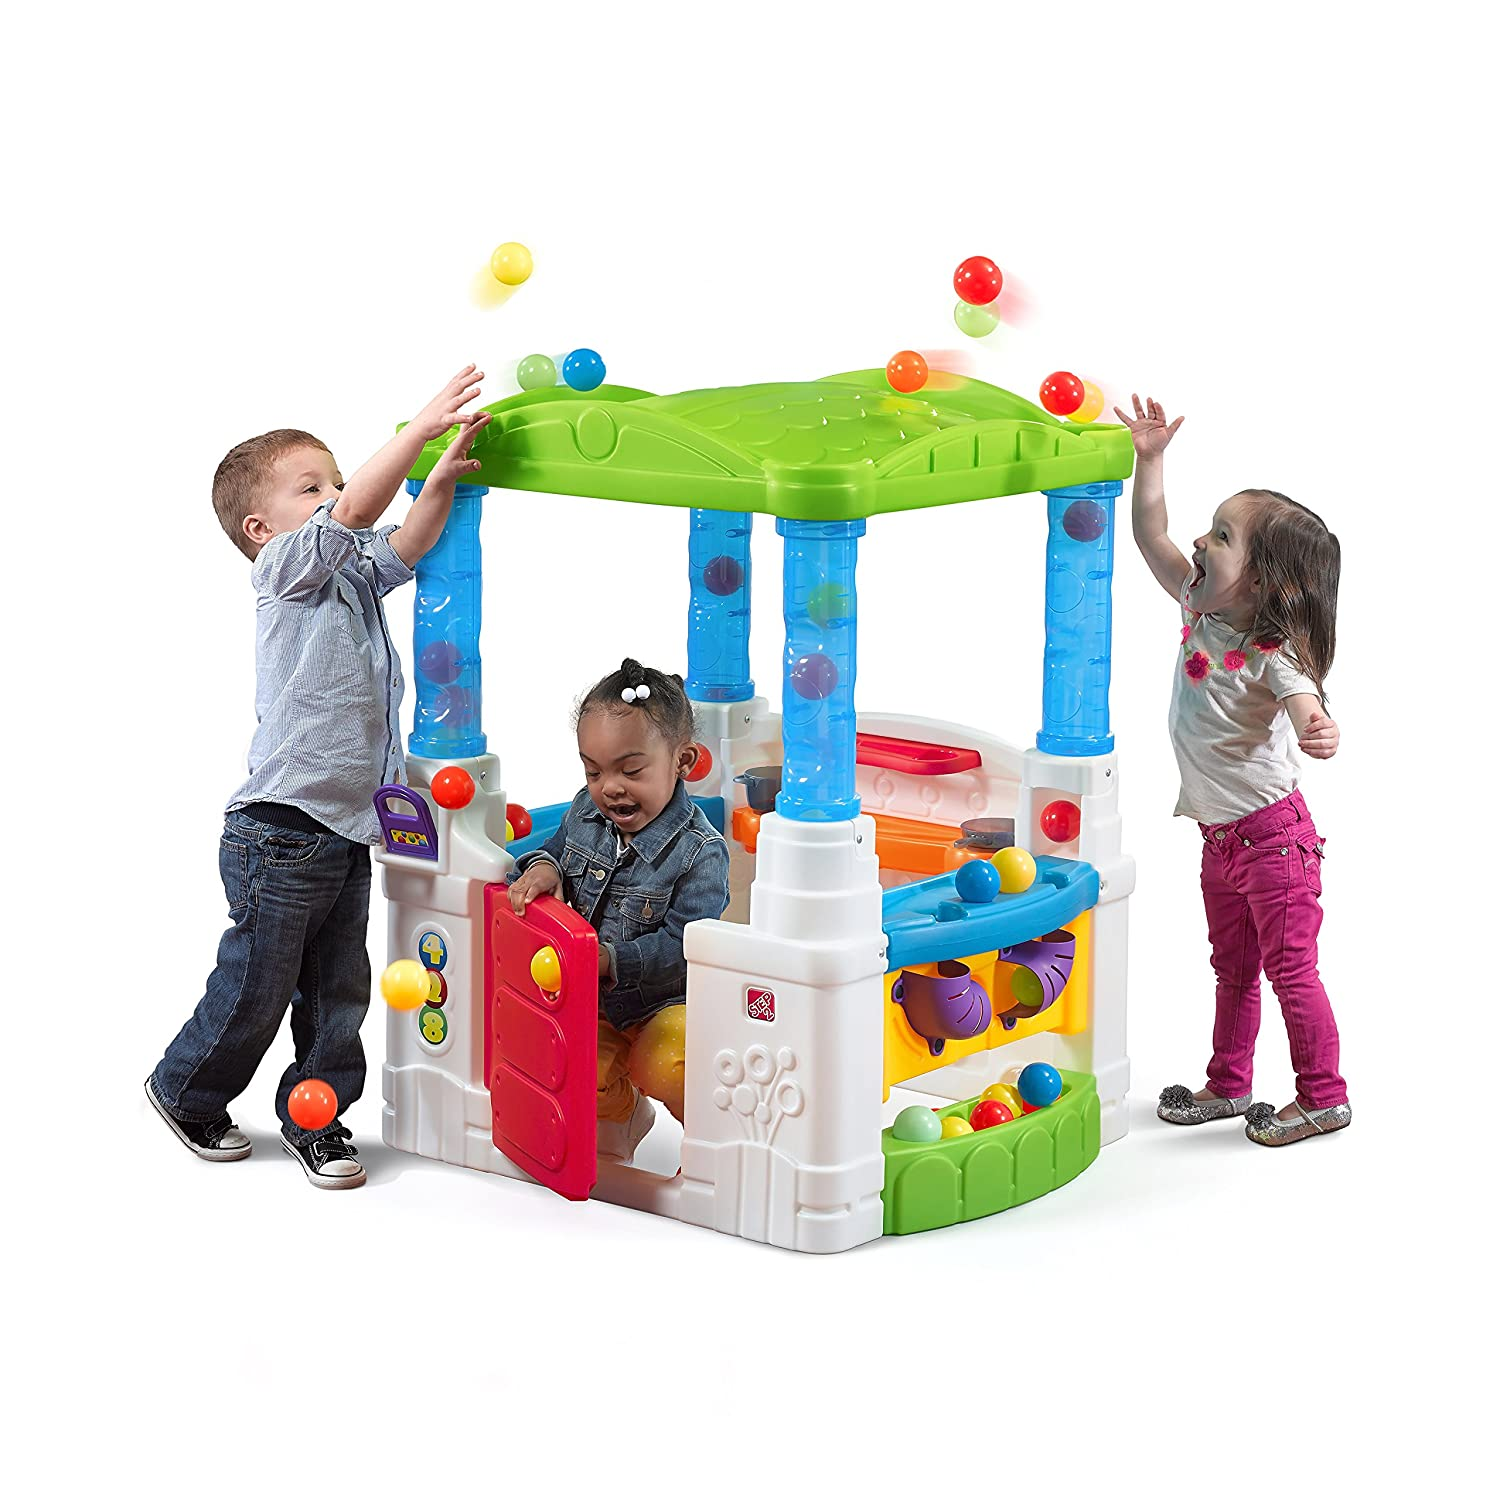 Amazon Step2 Wonderball Fun Playhouse Toys & Games